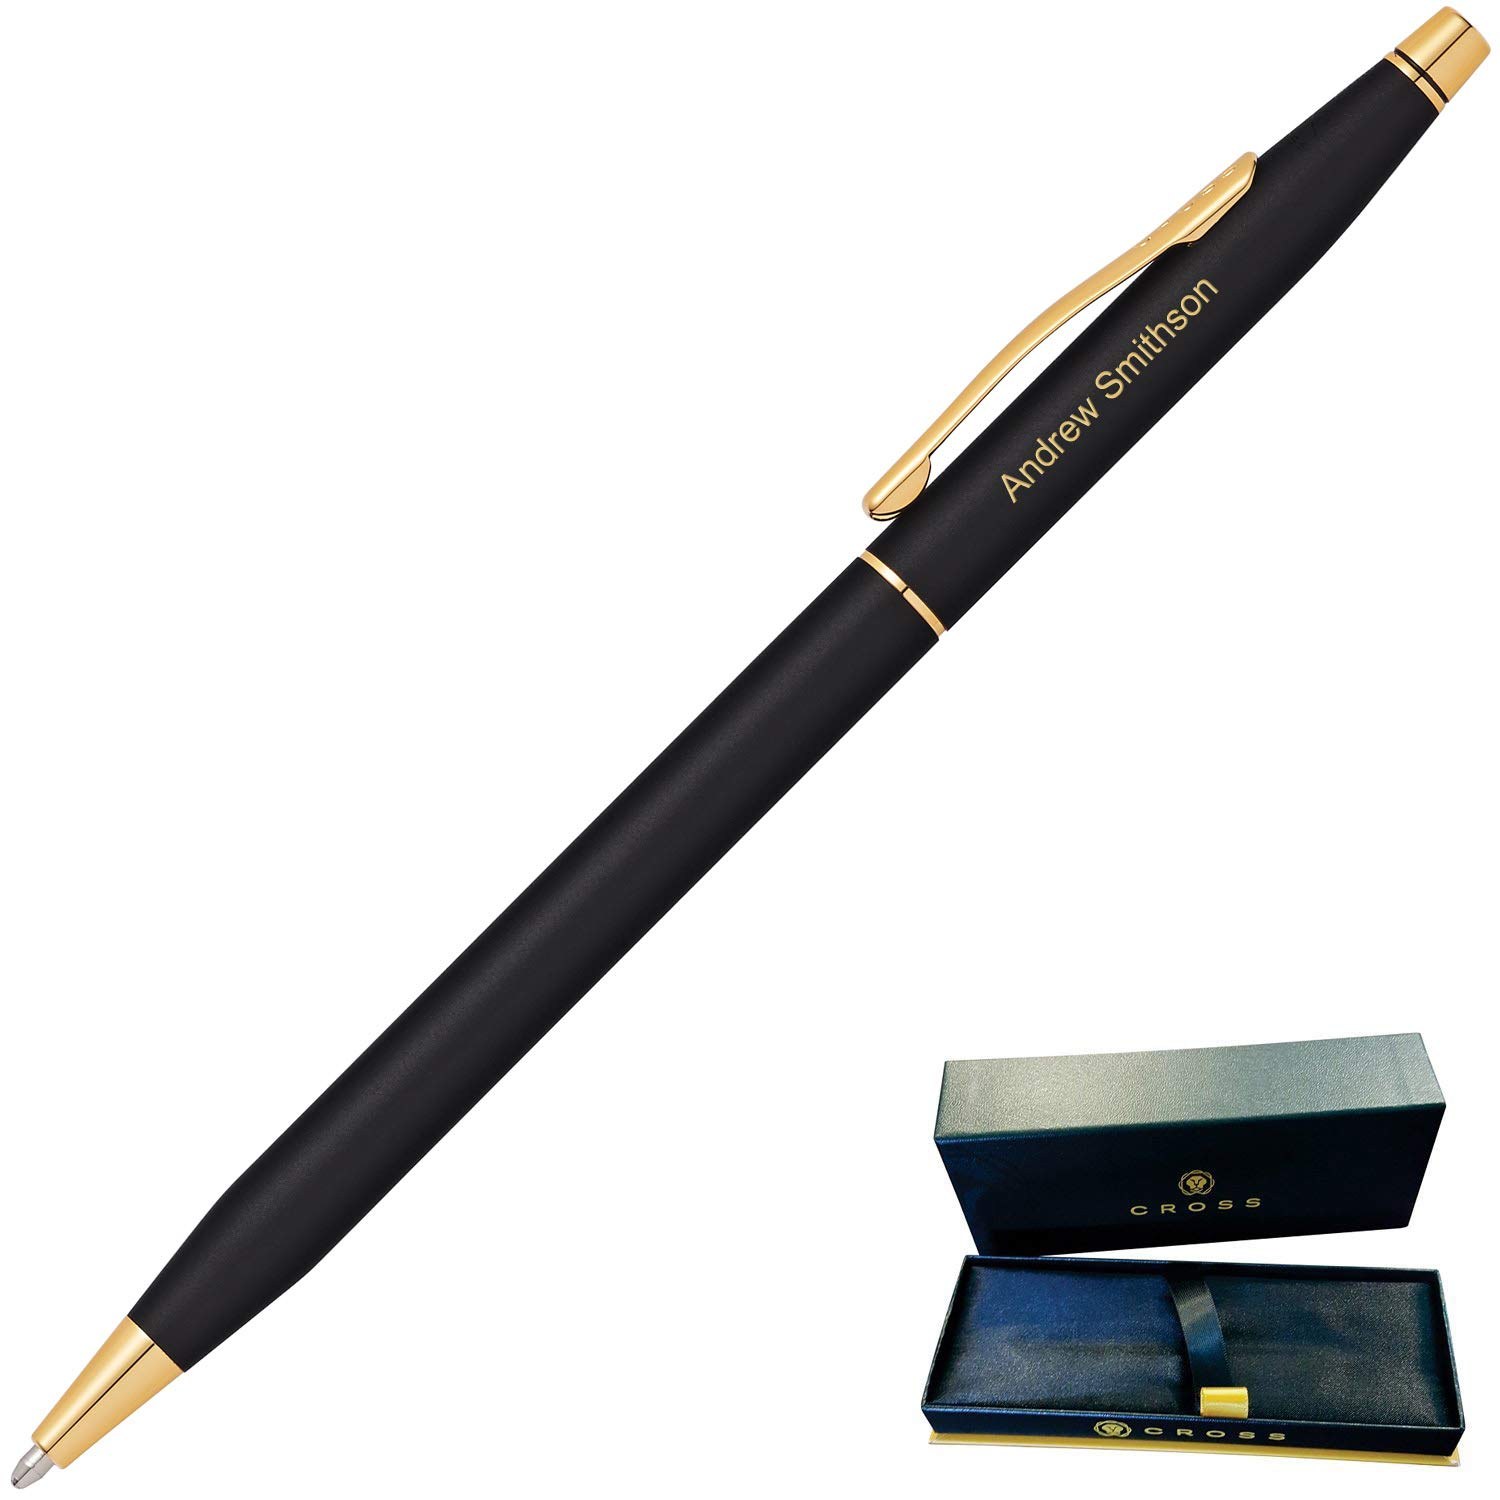 Dayspring Pens | Engraved/Personalized Cross Classic Century Black Ballpoint Pen with Gold Trim 2502. Custom Engraved Fast! by Dayspring Pens (Image #2)